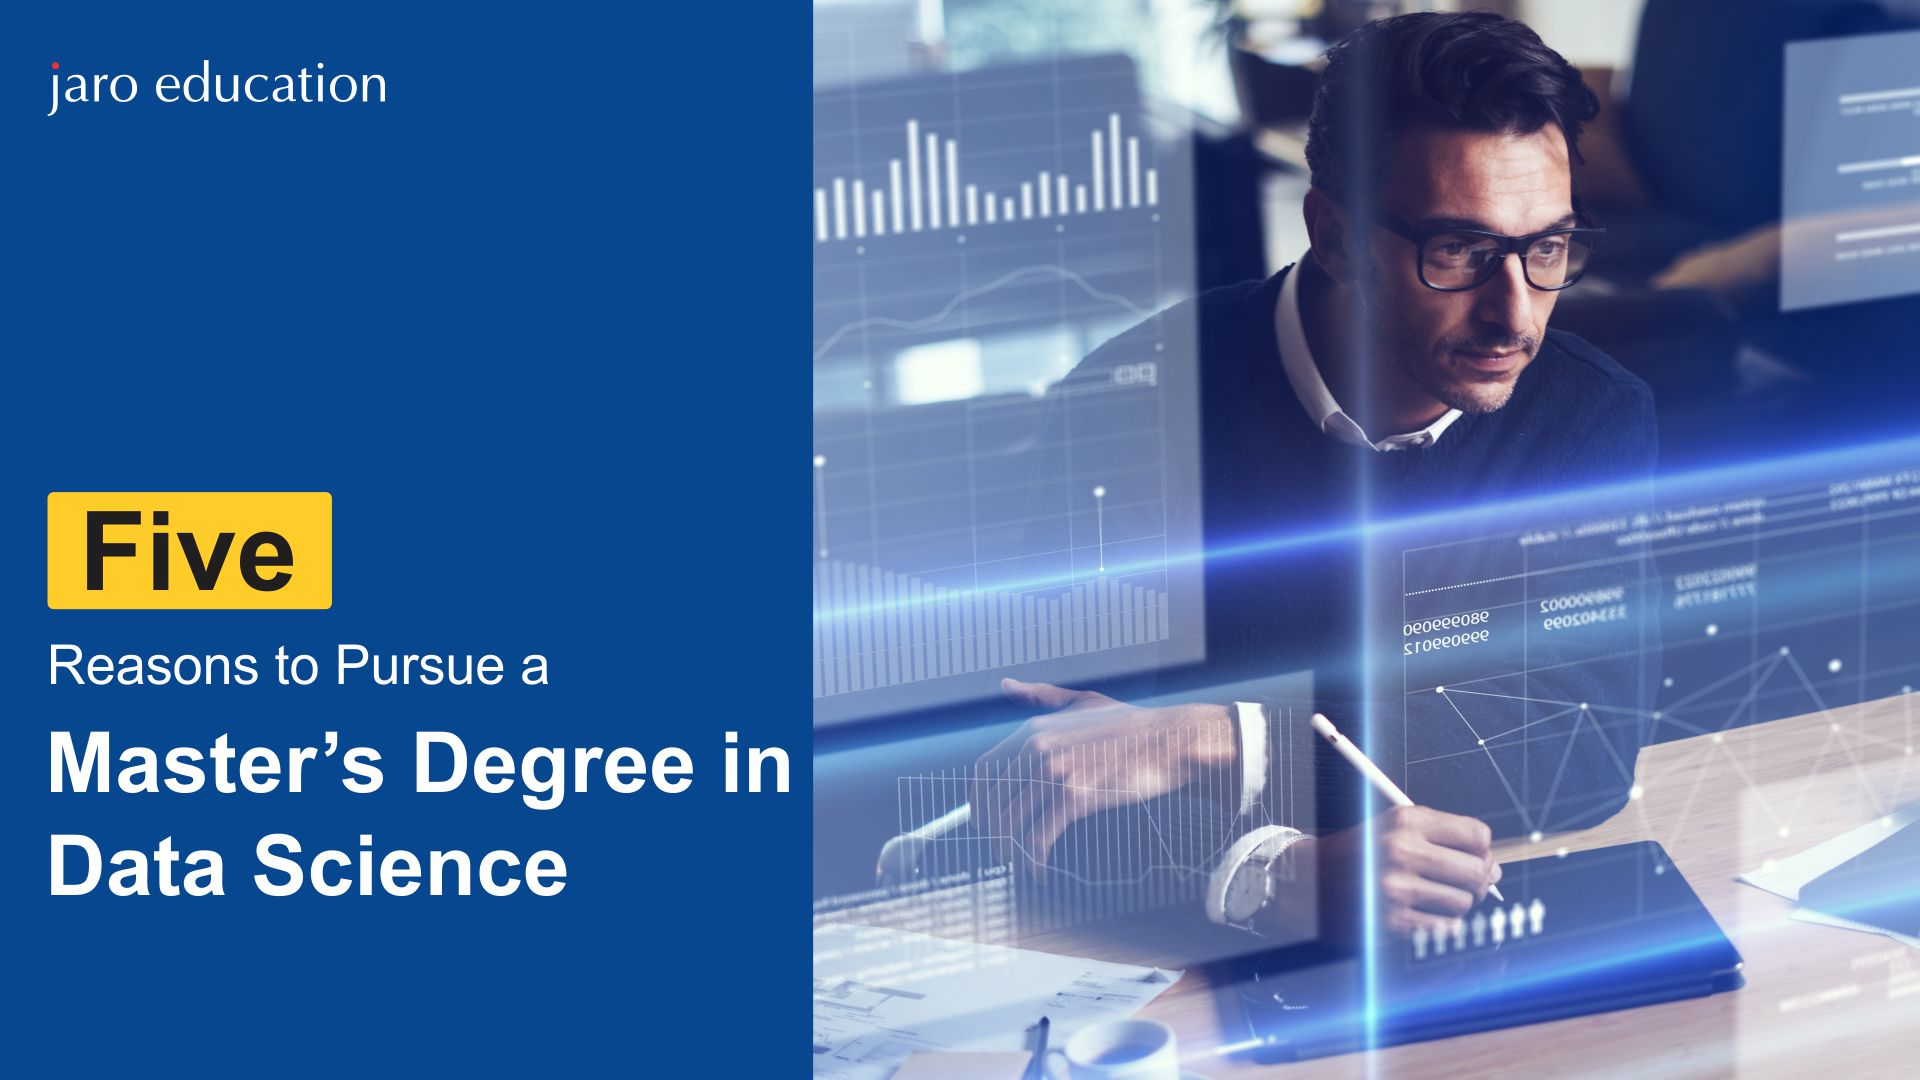 Five reasons to pursue a Master's degree in Data Science